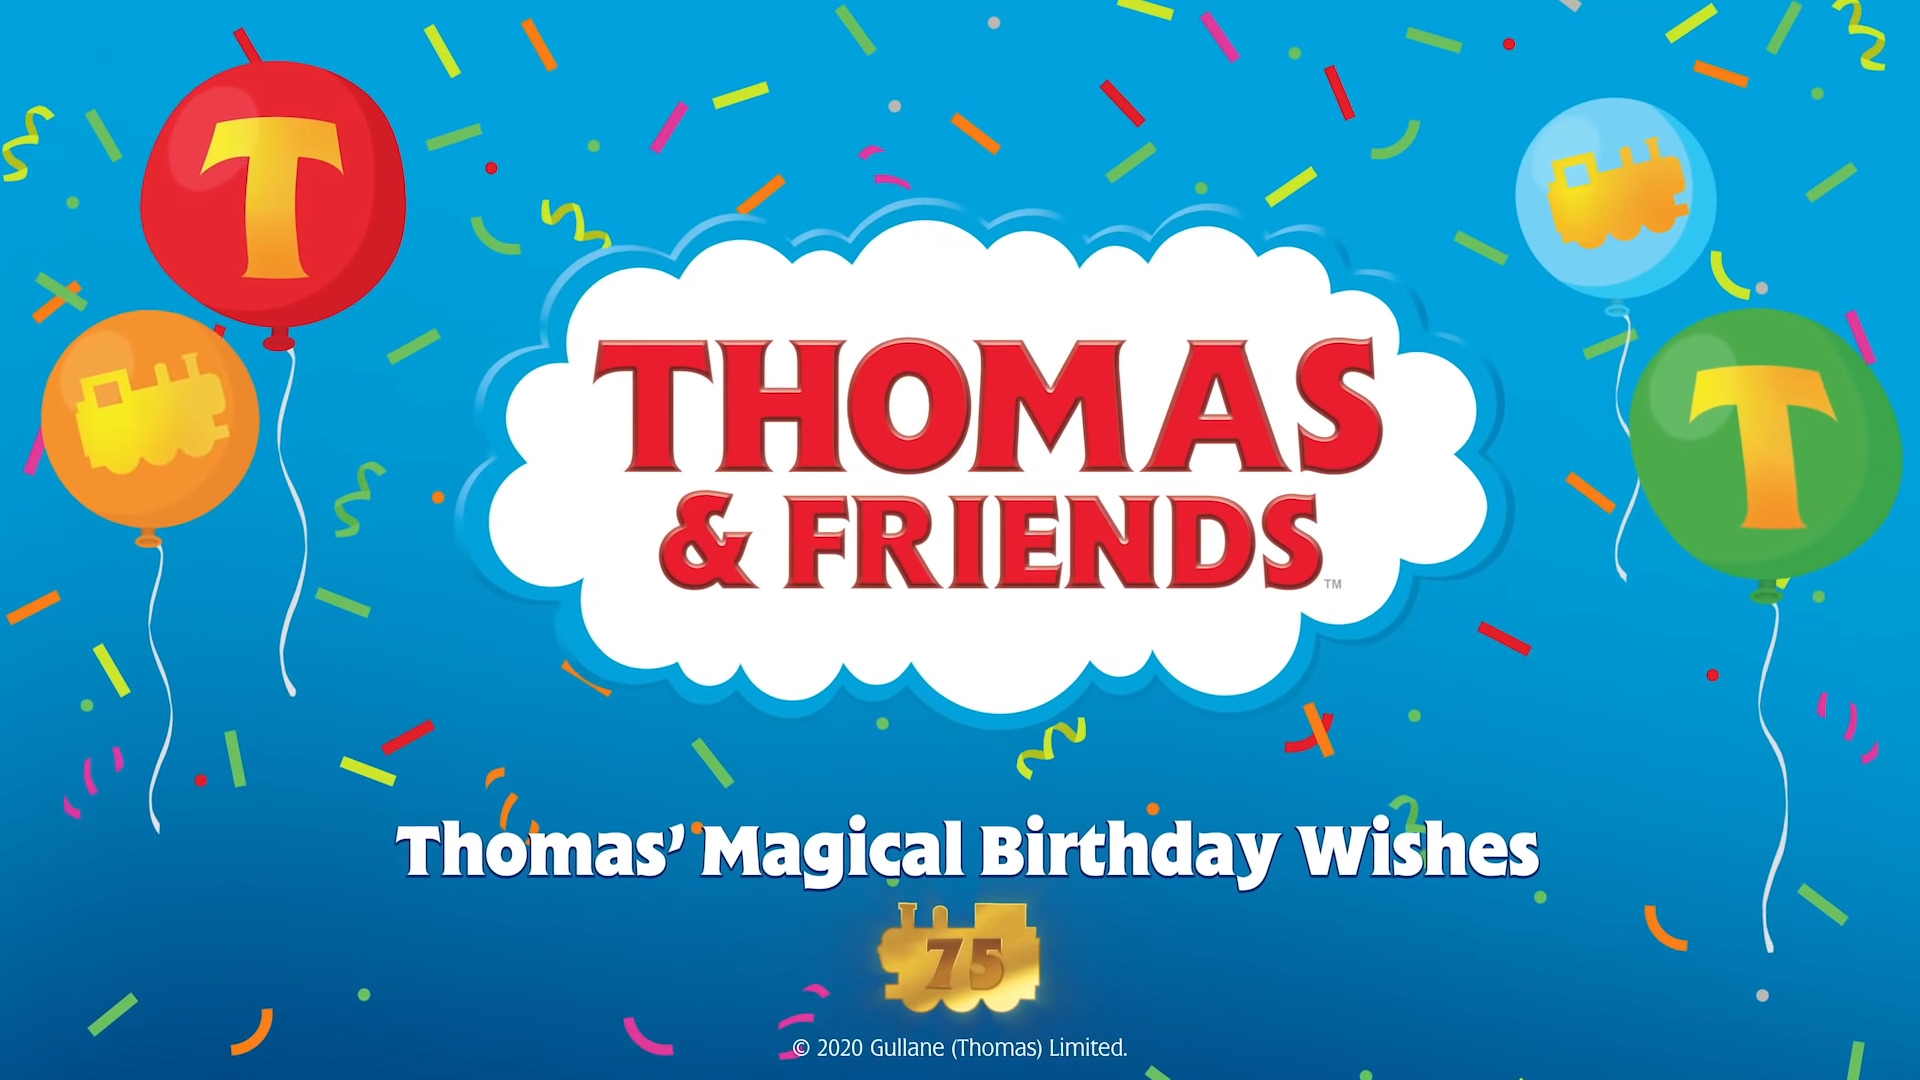 Thomas' Magical Birthday Wishes